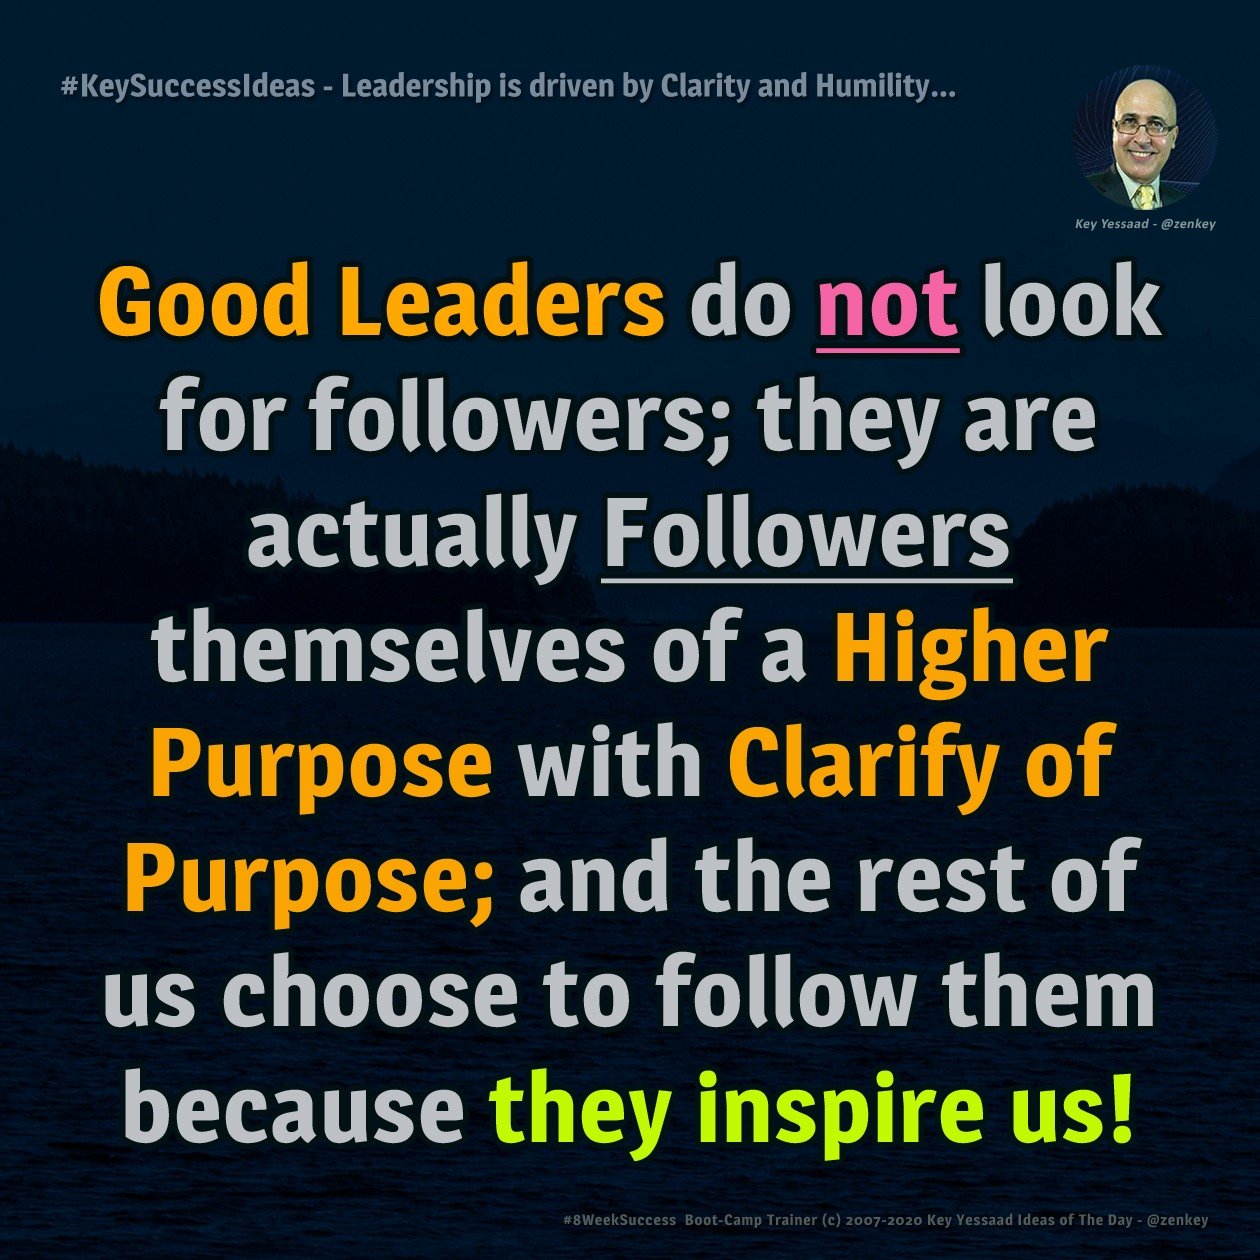 Leadership is driven by Clarity and Humility... - #KeySuccessIdeas